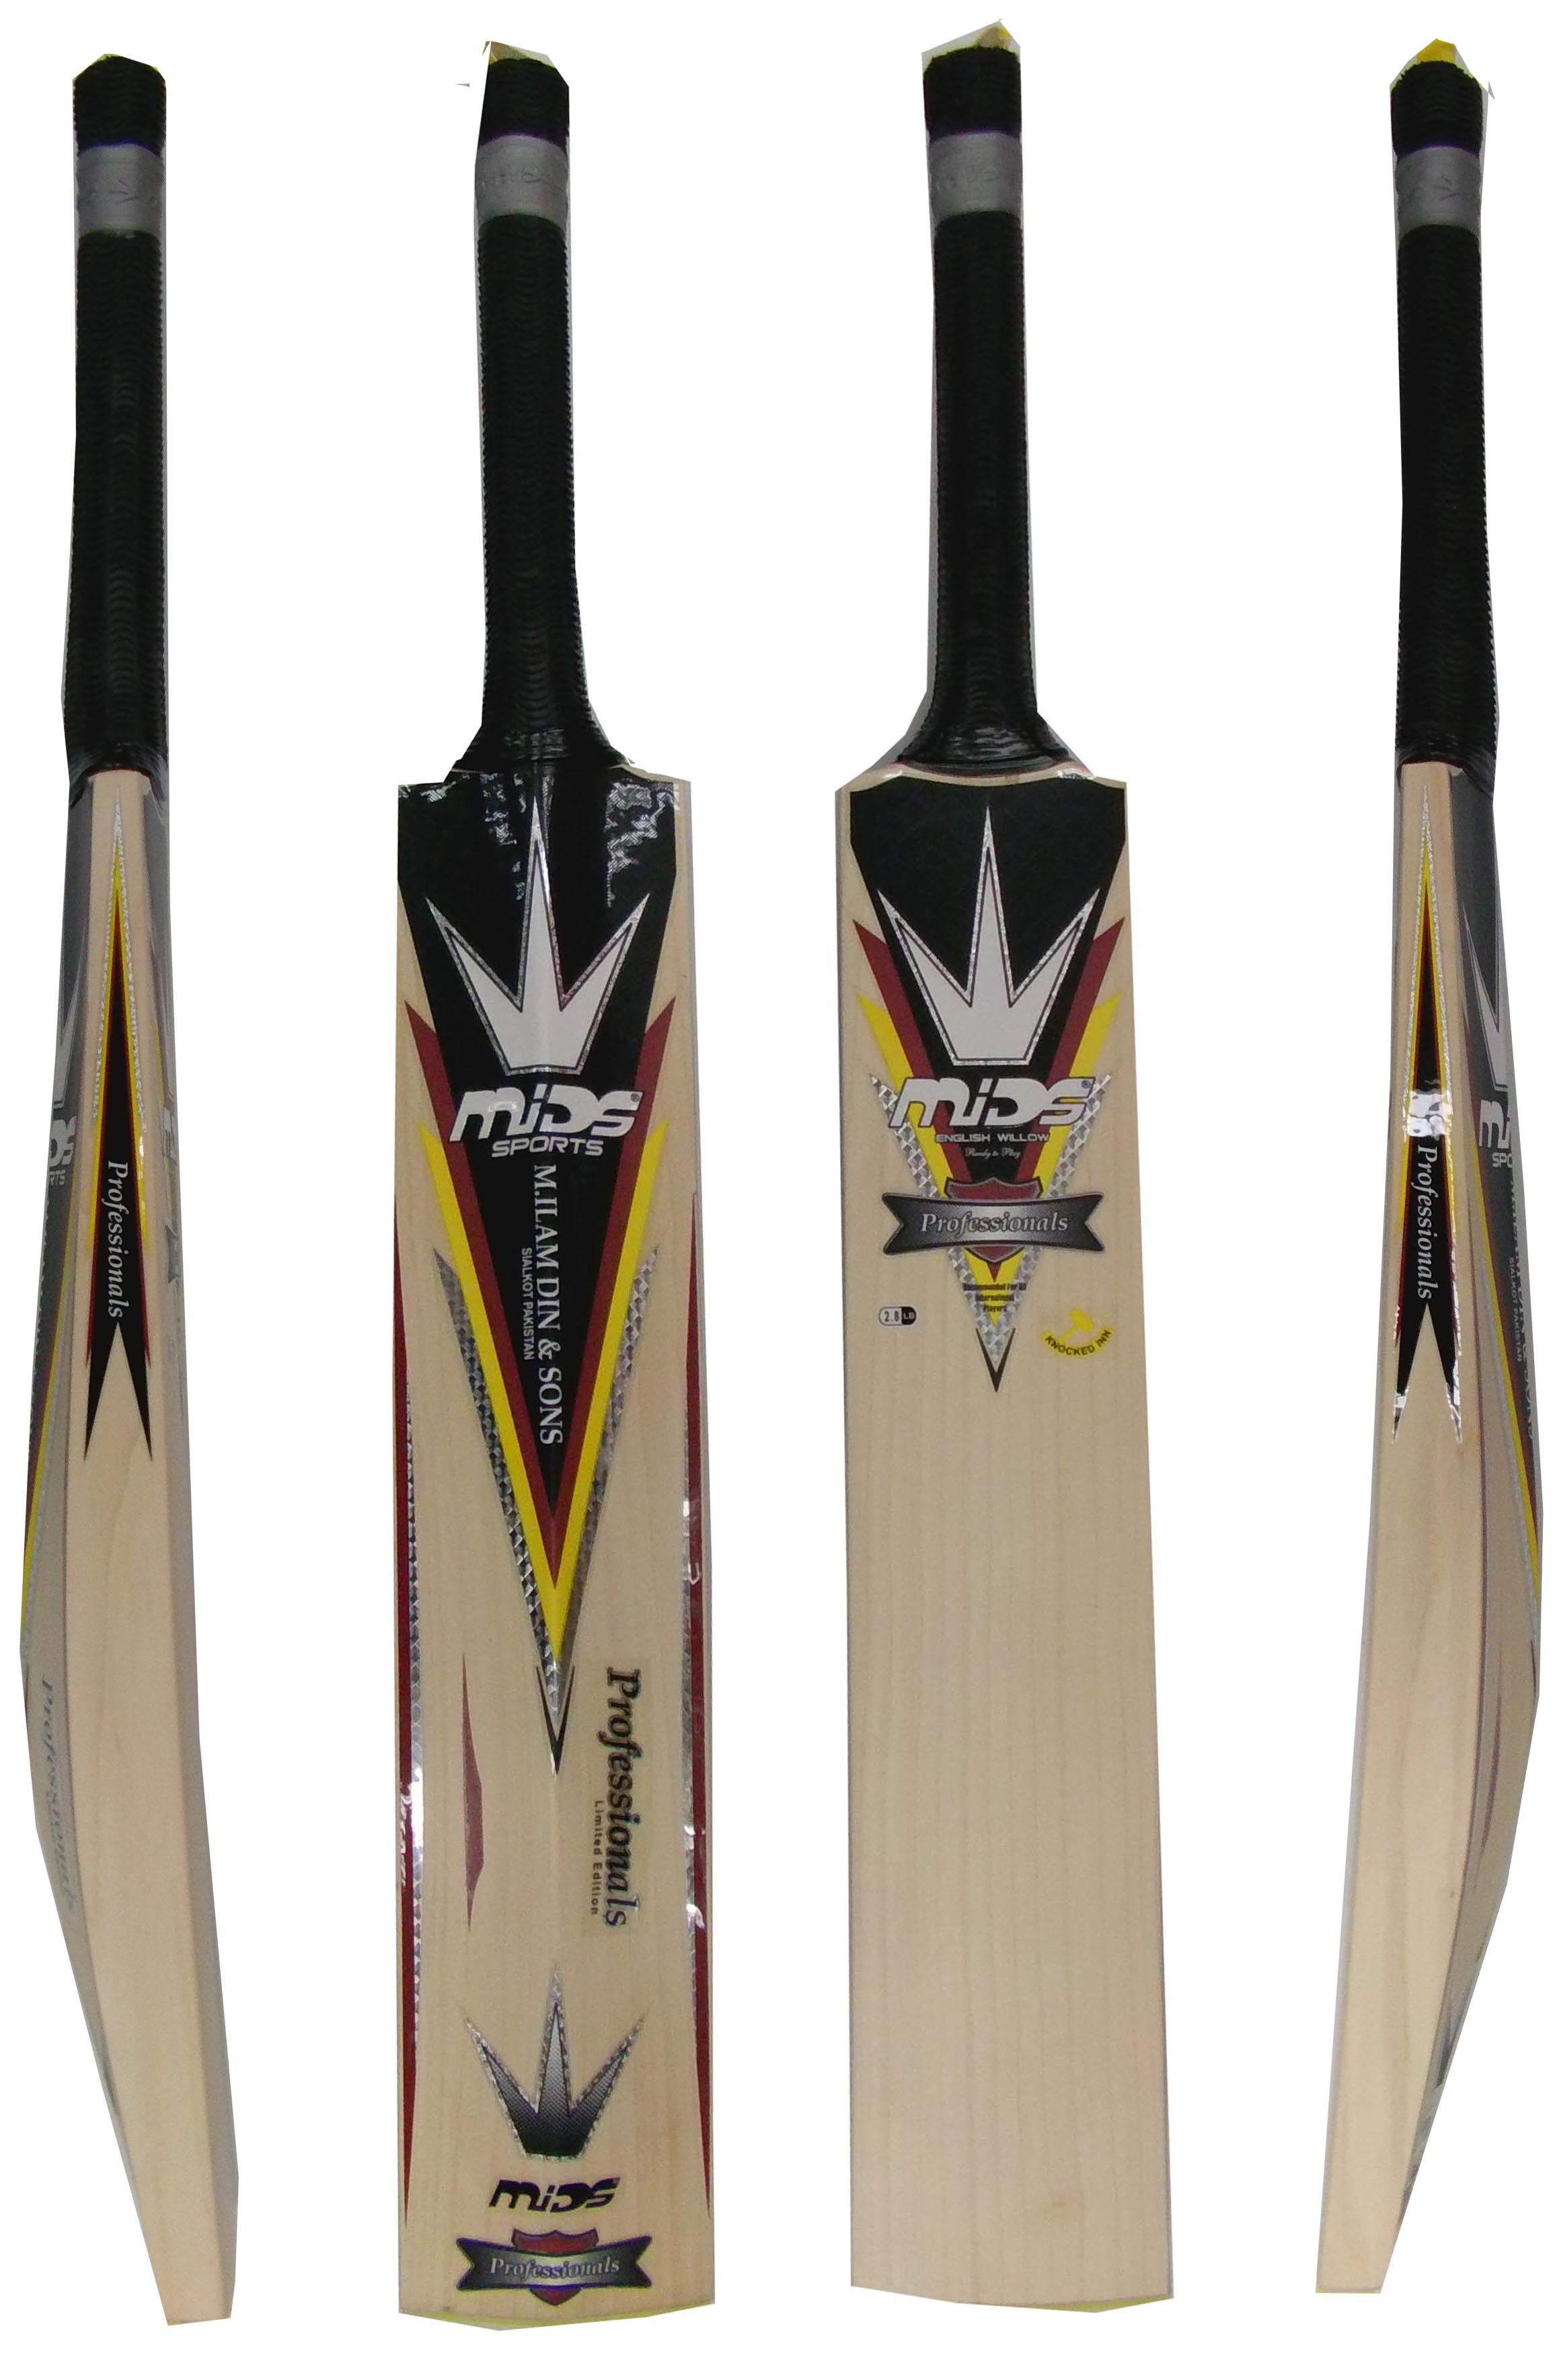 Mids Professionals Grade 1 English Willow Cricket Bat SH weight 2.9 Lbs